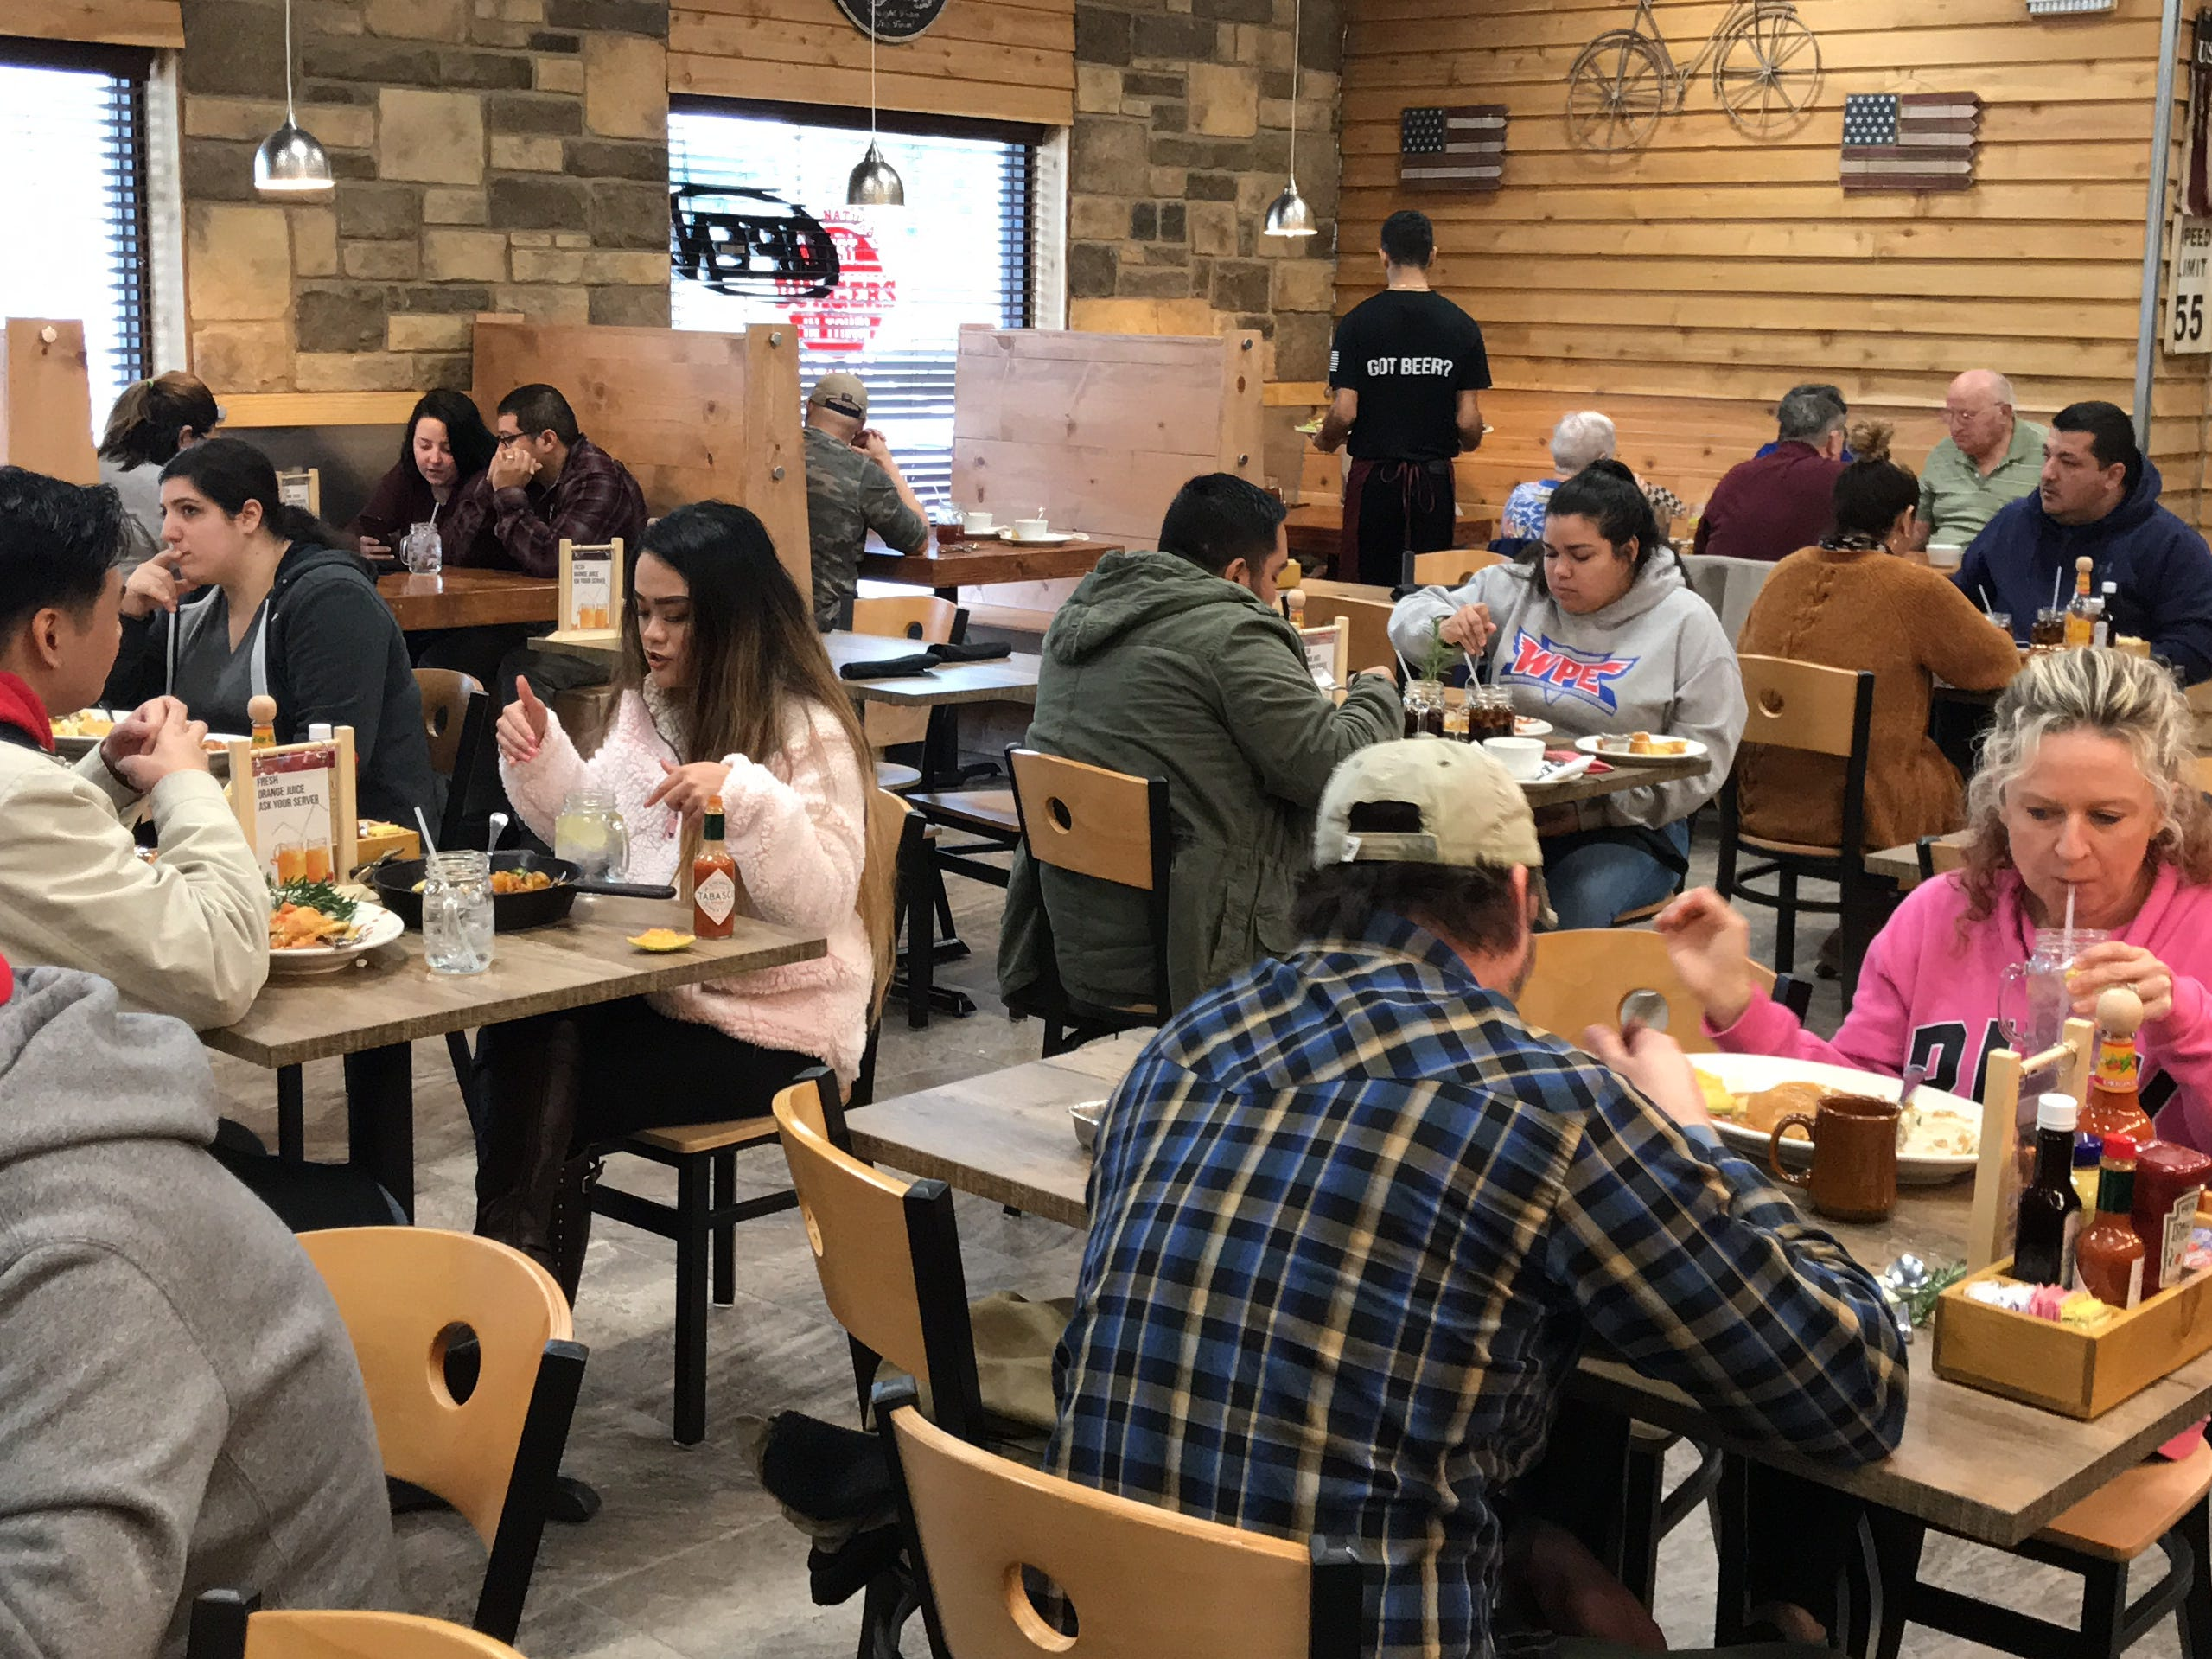 The new Chops & Eggs Hash House offers the same casual atmosphere the previous location once offered to its customers, but with a new chic and modern twist.